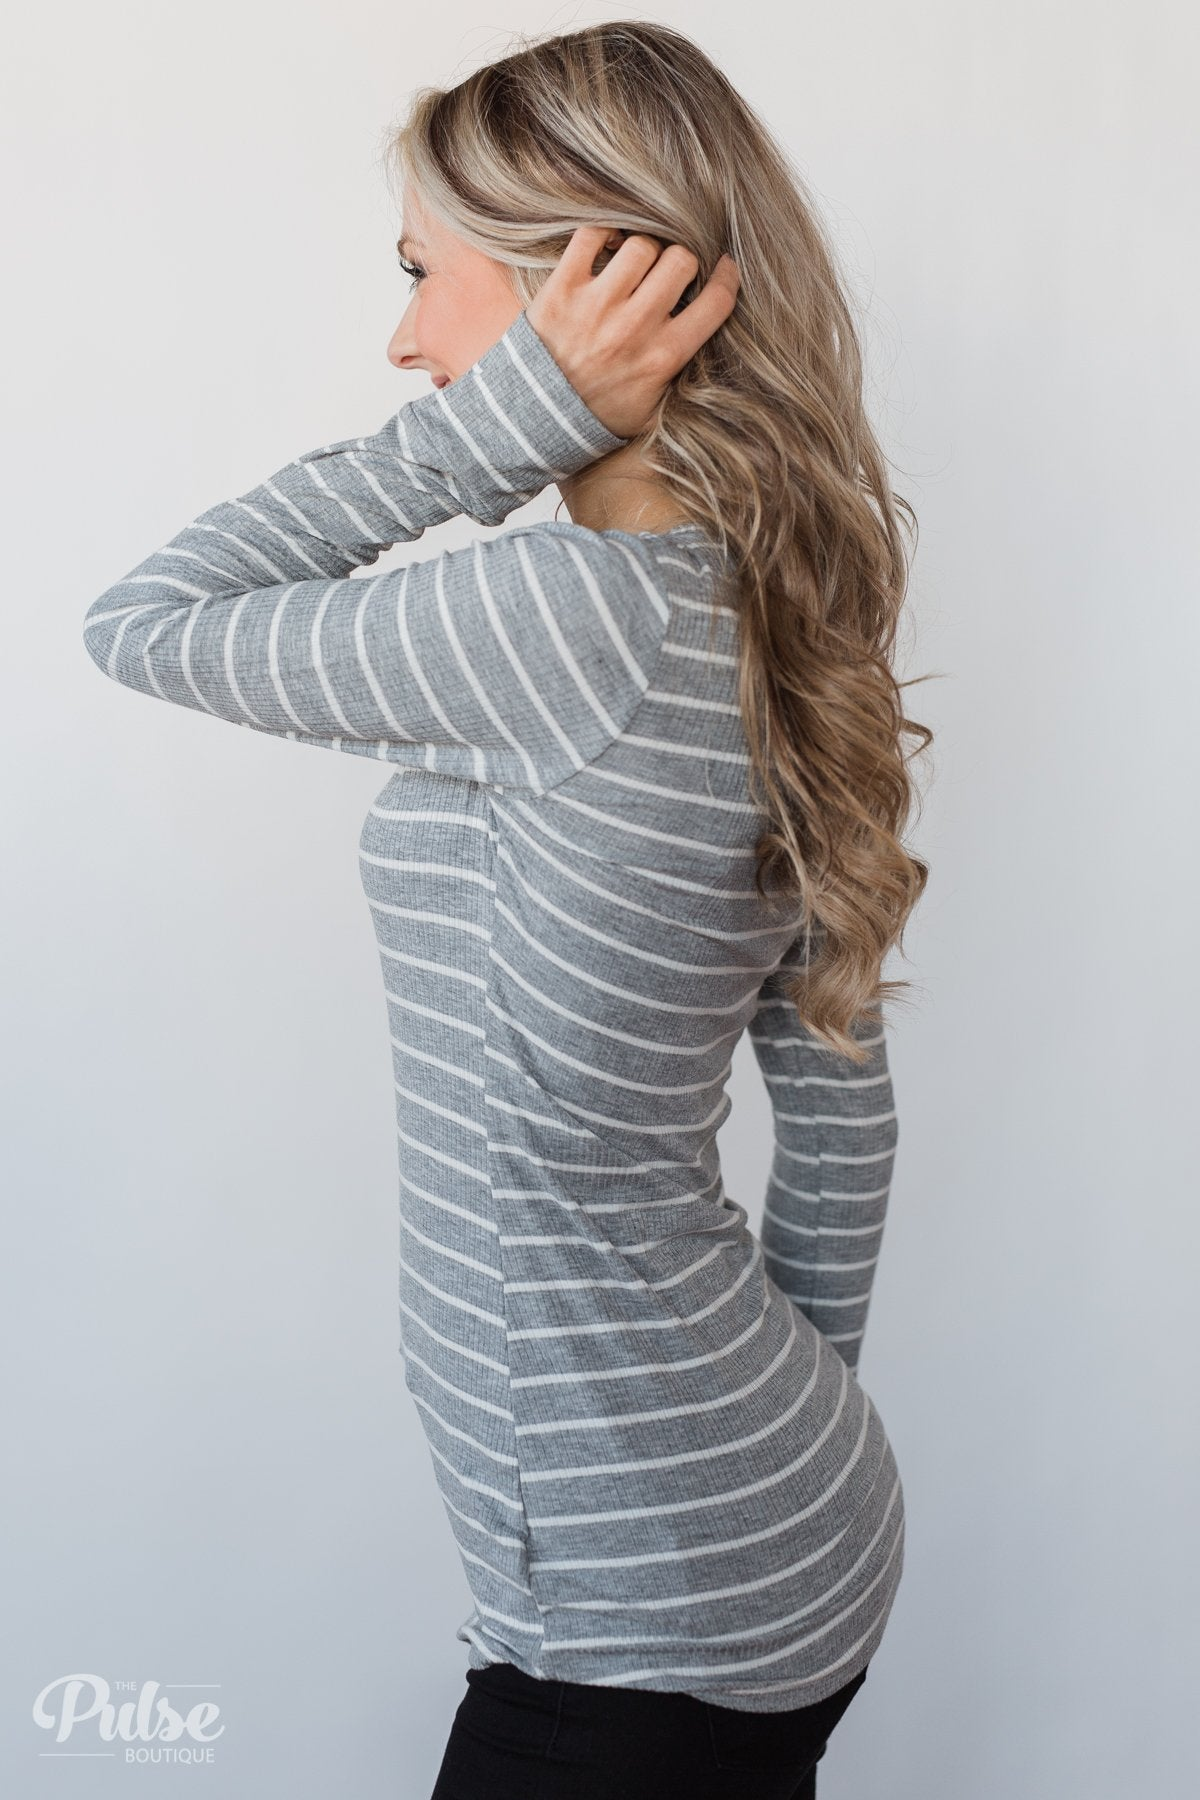 Need You Now 5-Button Henley Top- Grey Striped